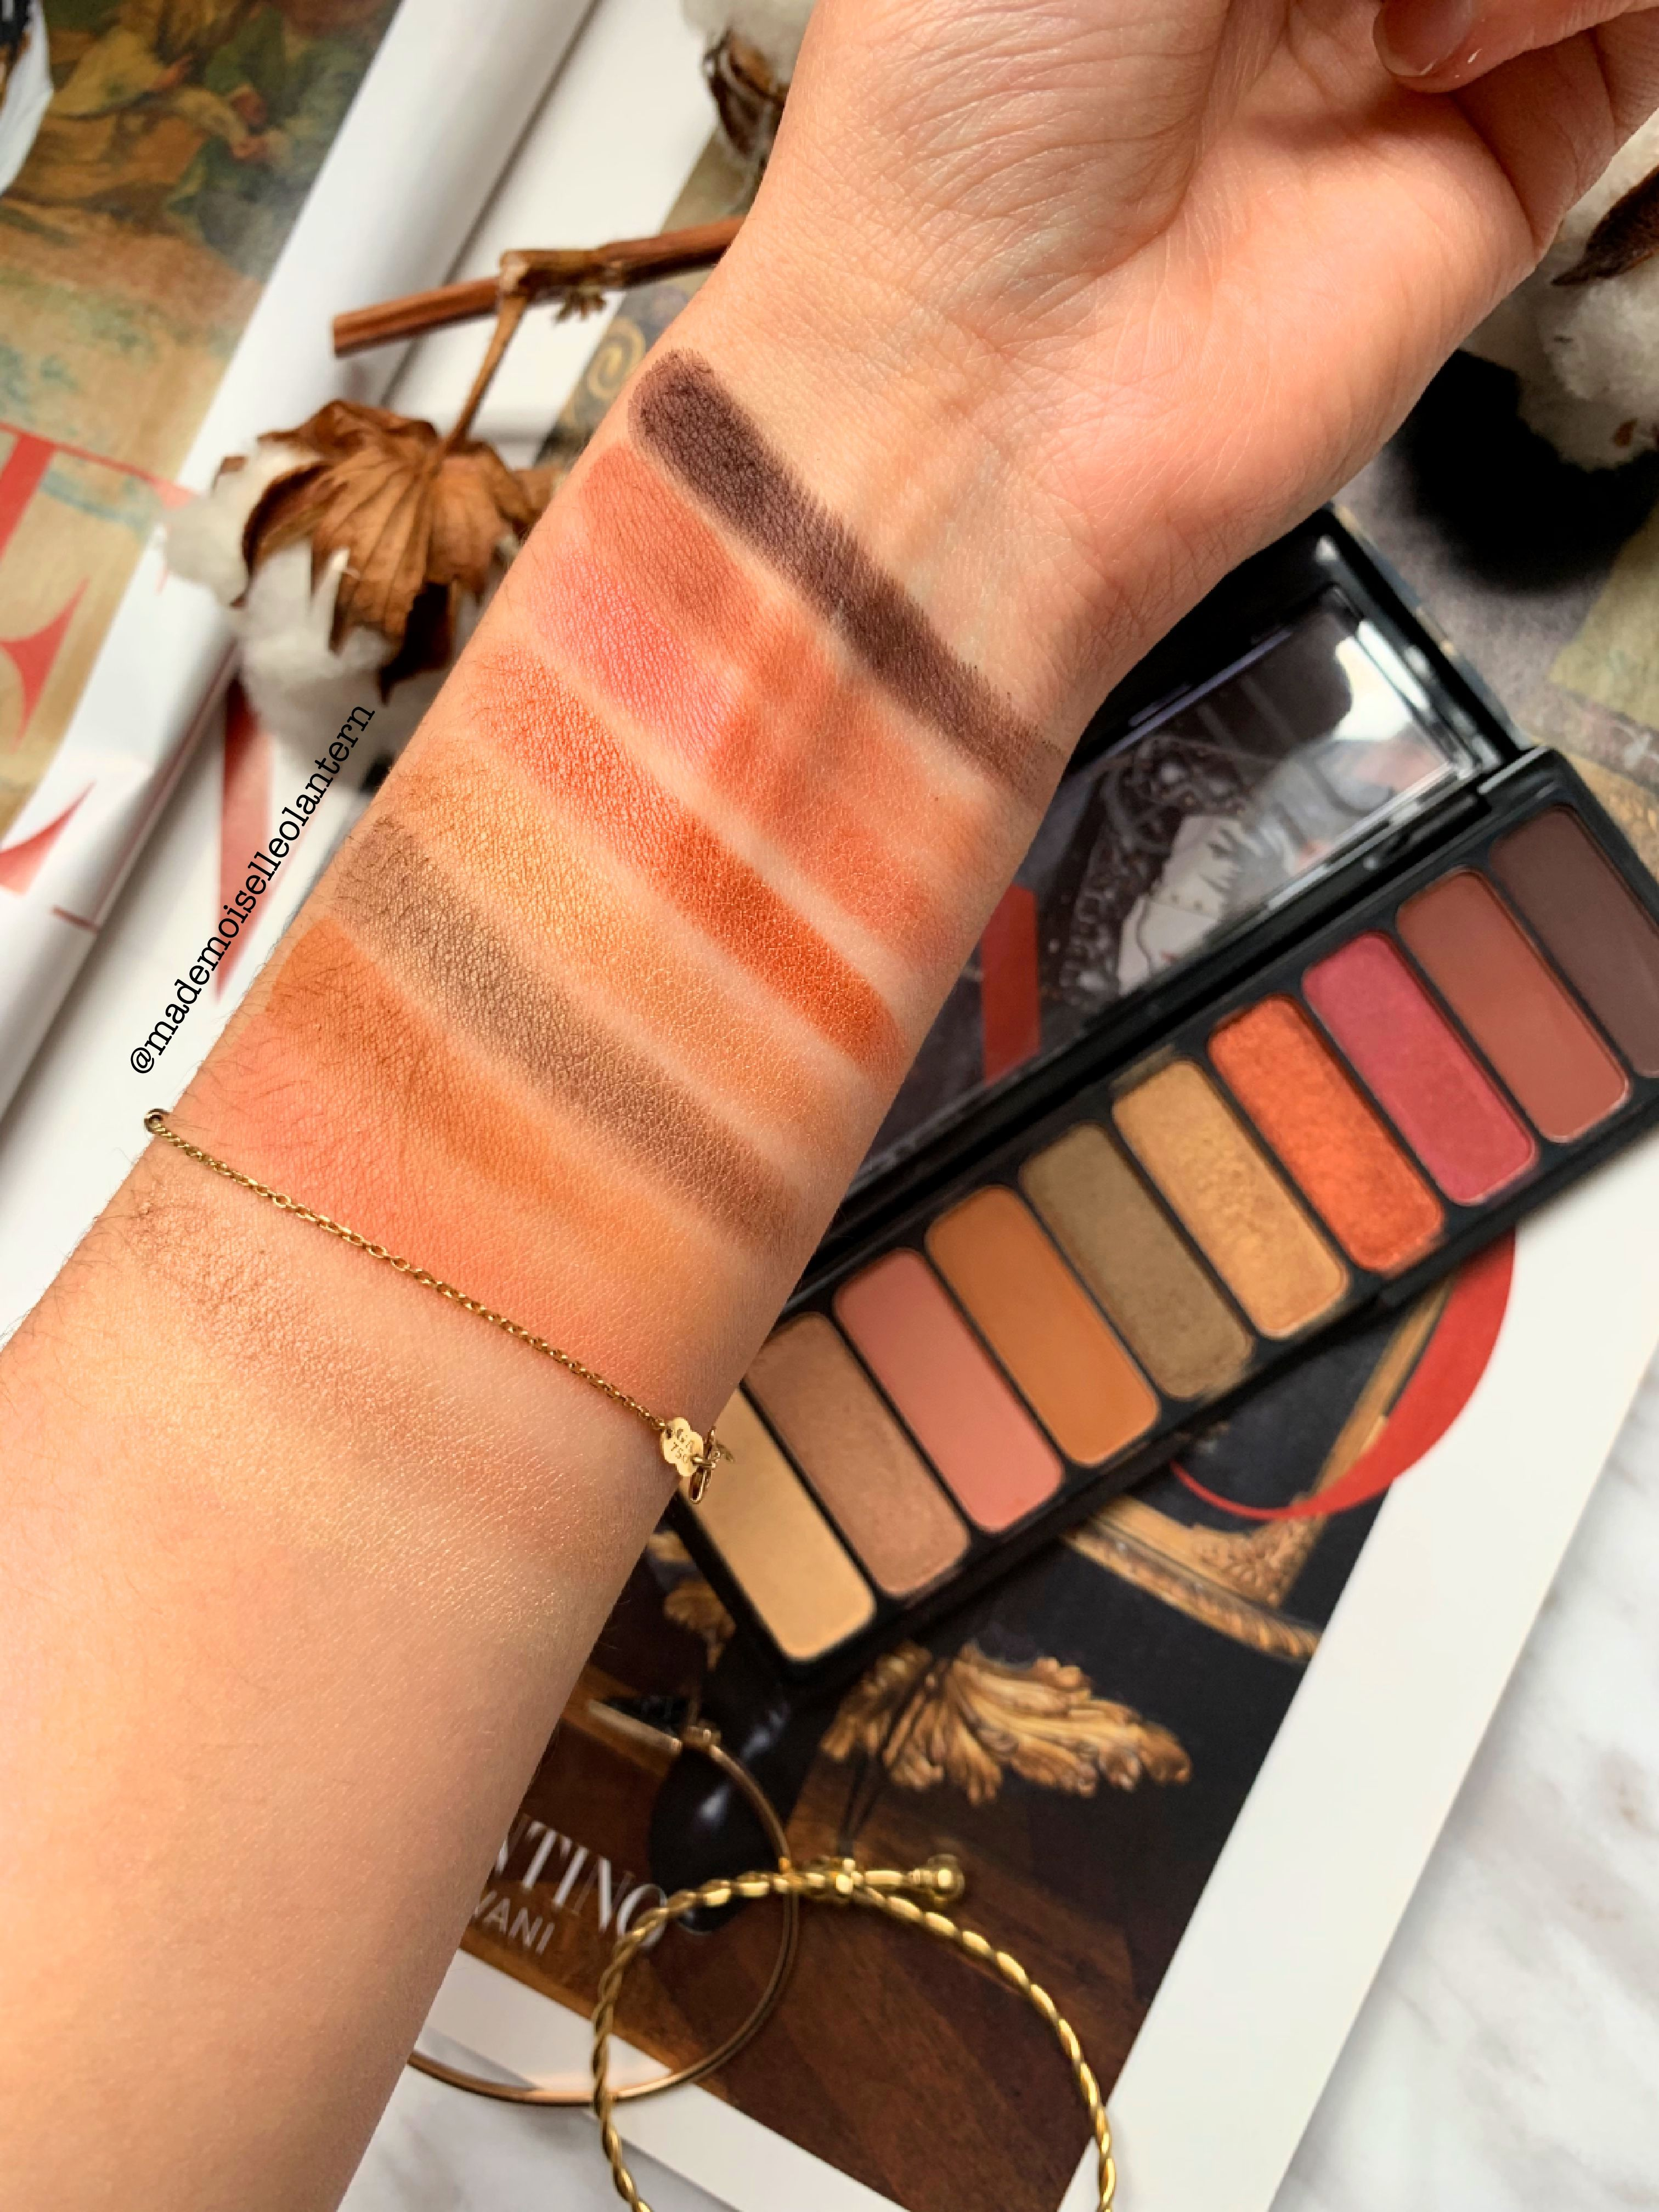 REVIEW // Rose Gold Sunset palette by ELF Sunset palette